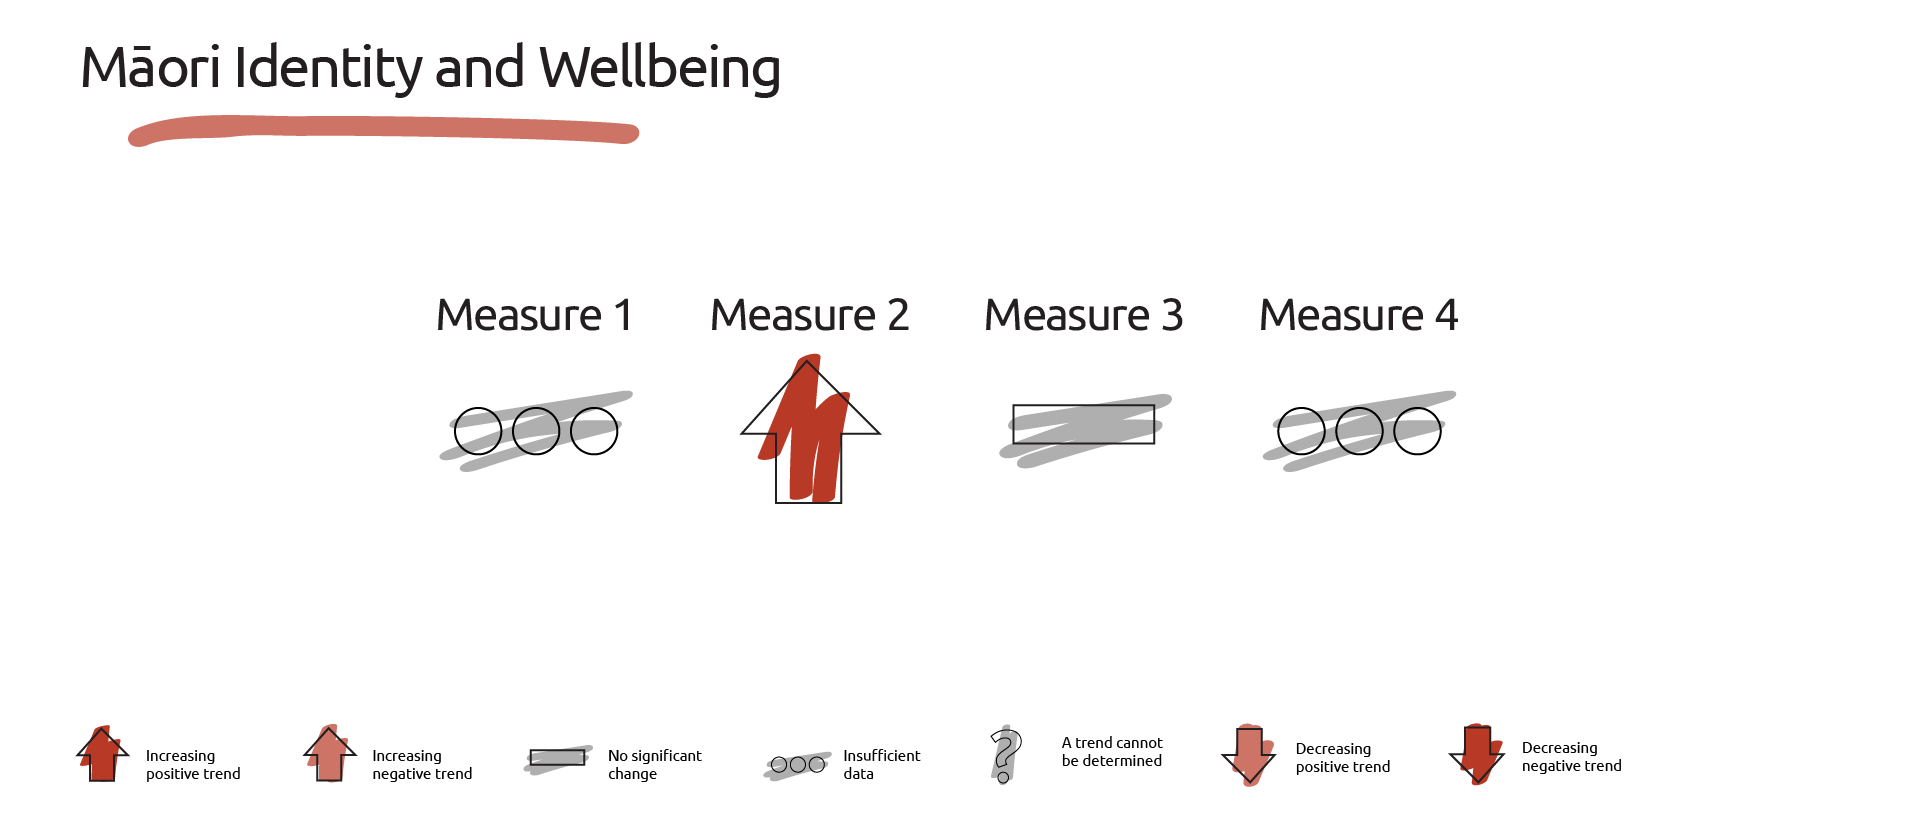 Image showing the dashboard of measures for maori identiy and wellbeing.